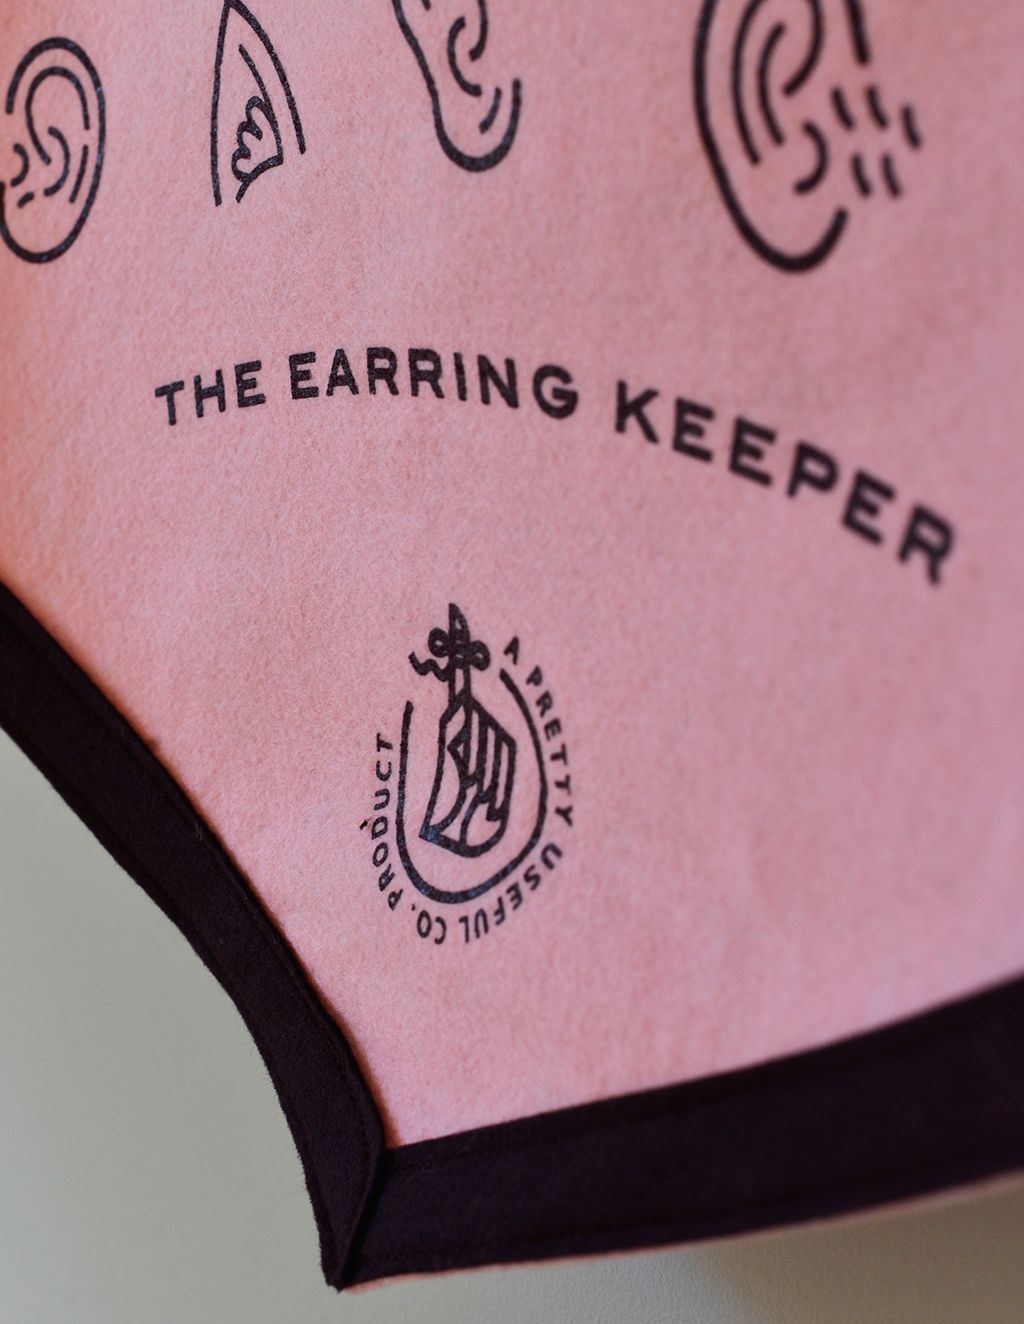 Earring Keeper